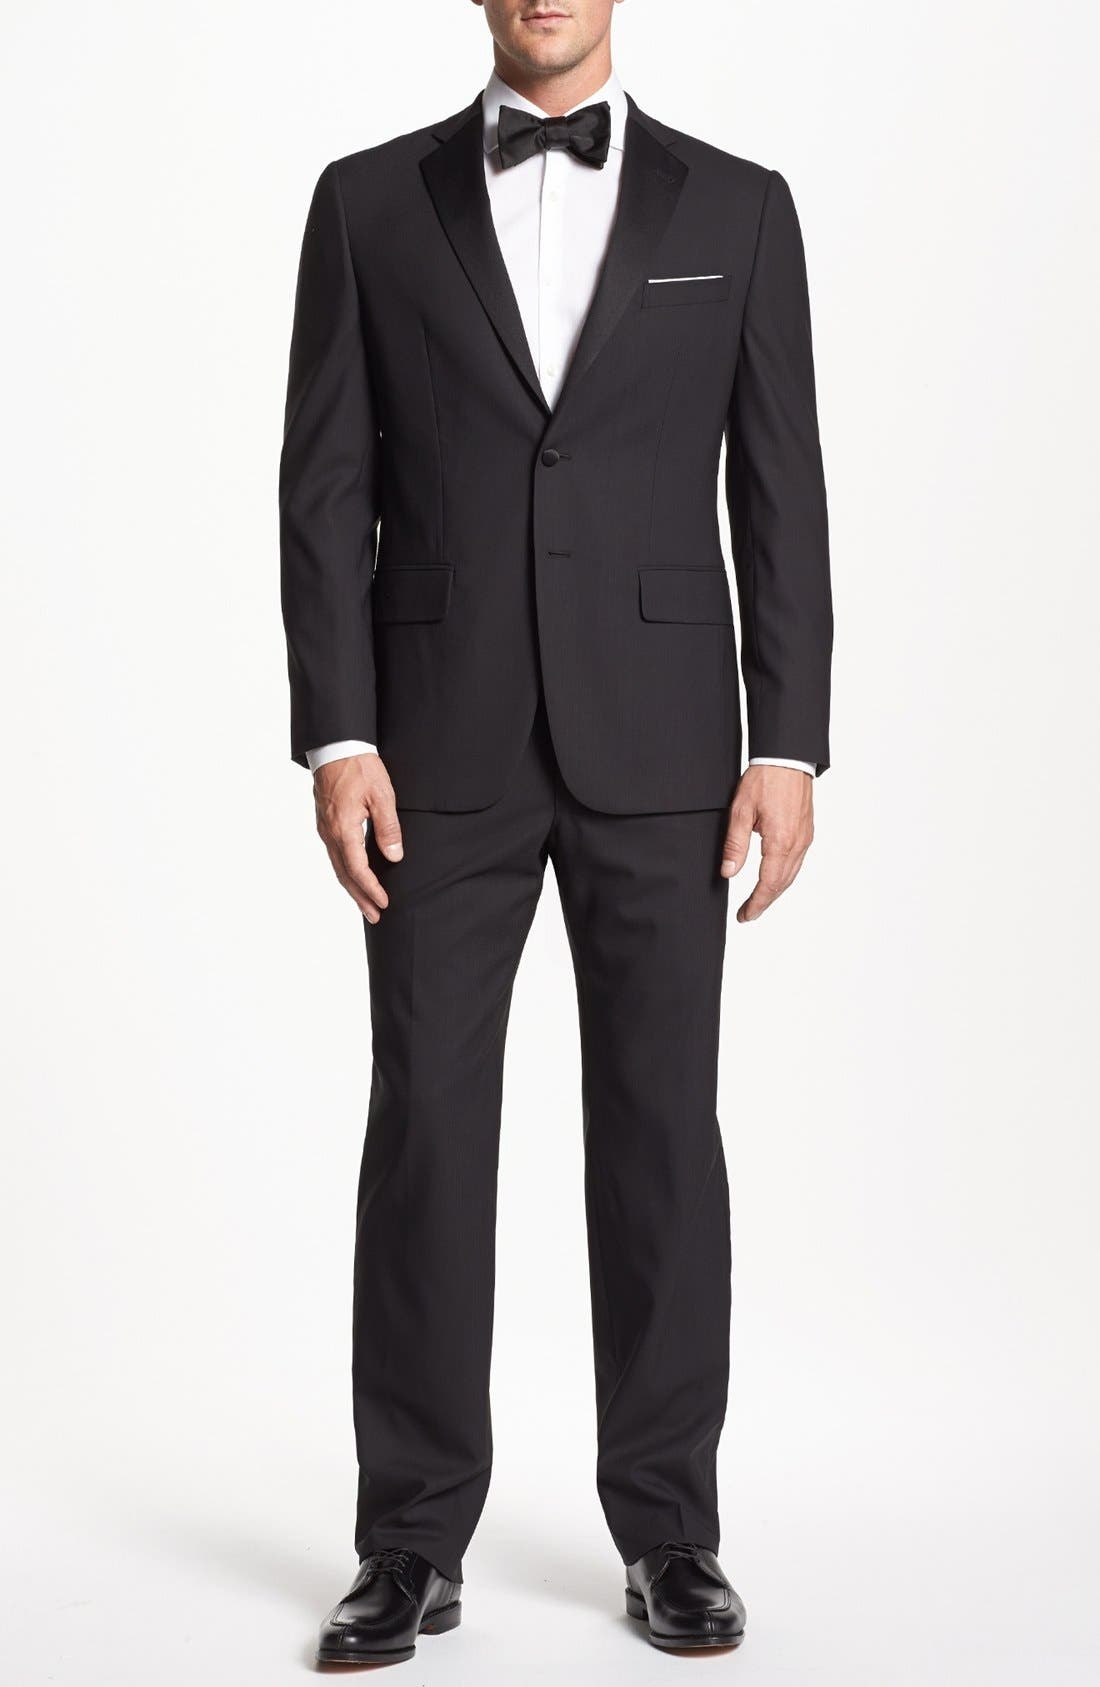 Main Image - Joseph Abboud 'Profile Hybrid' Trim Fit Wool Tuxedo (Online Only)